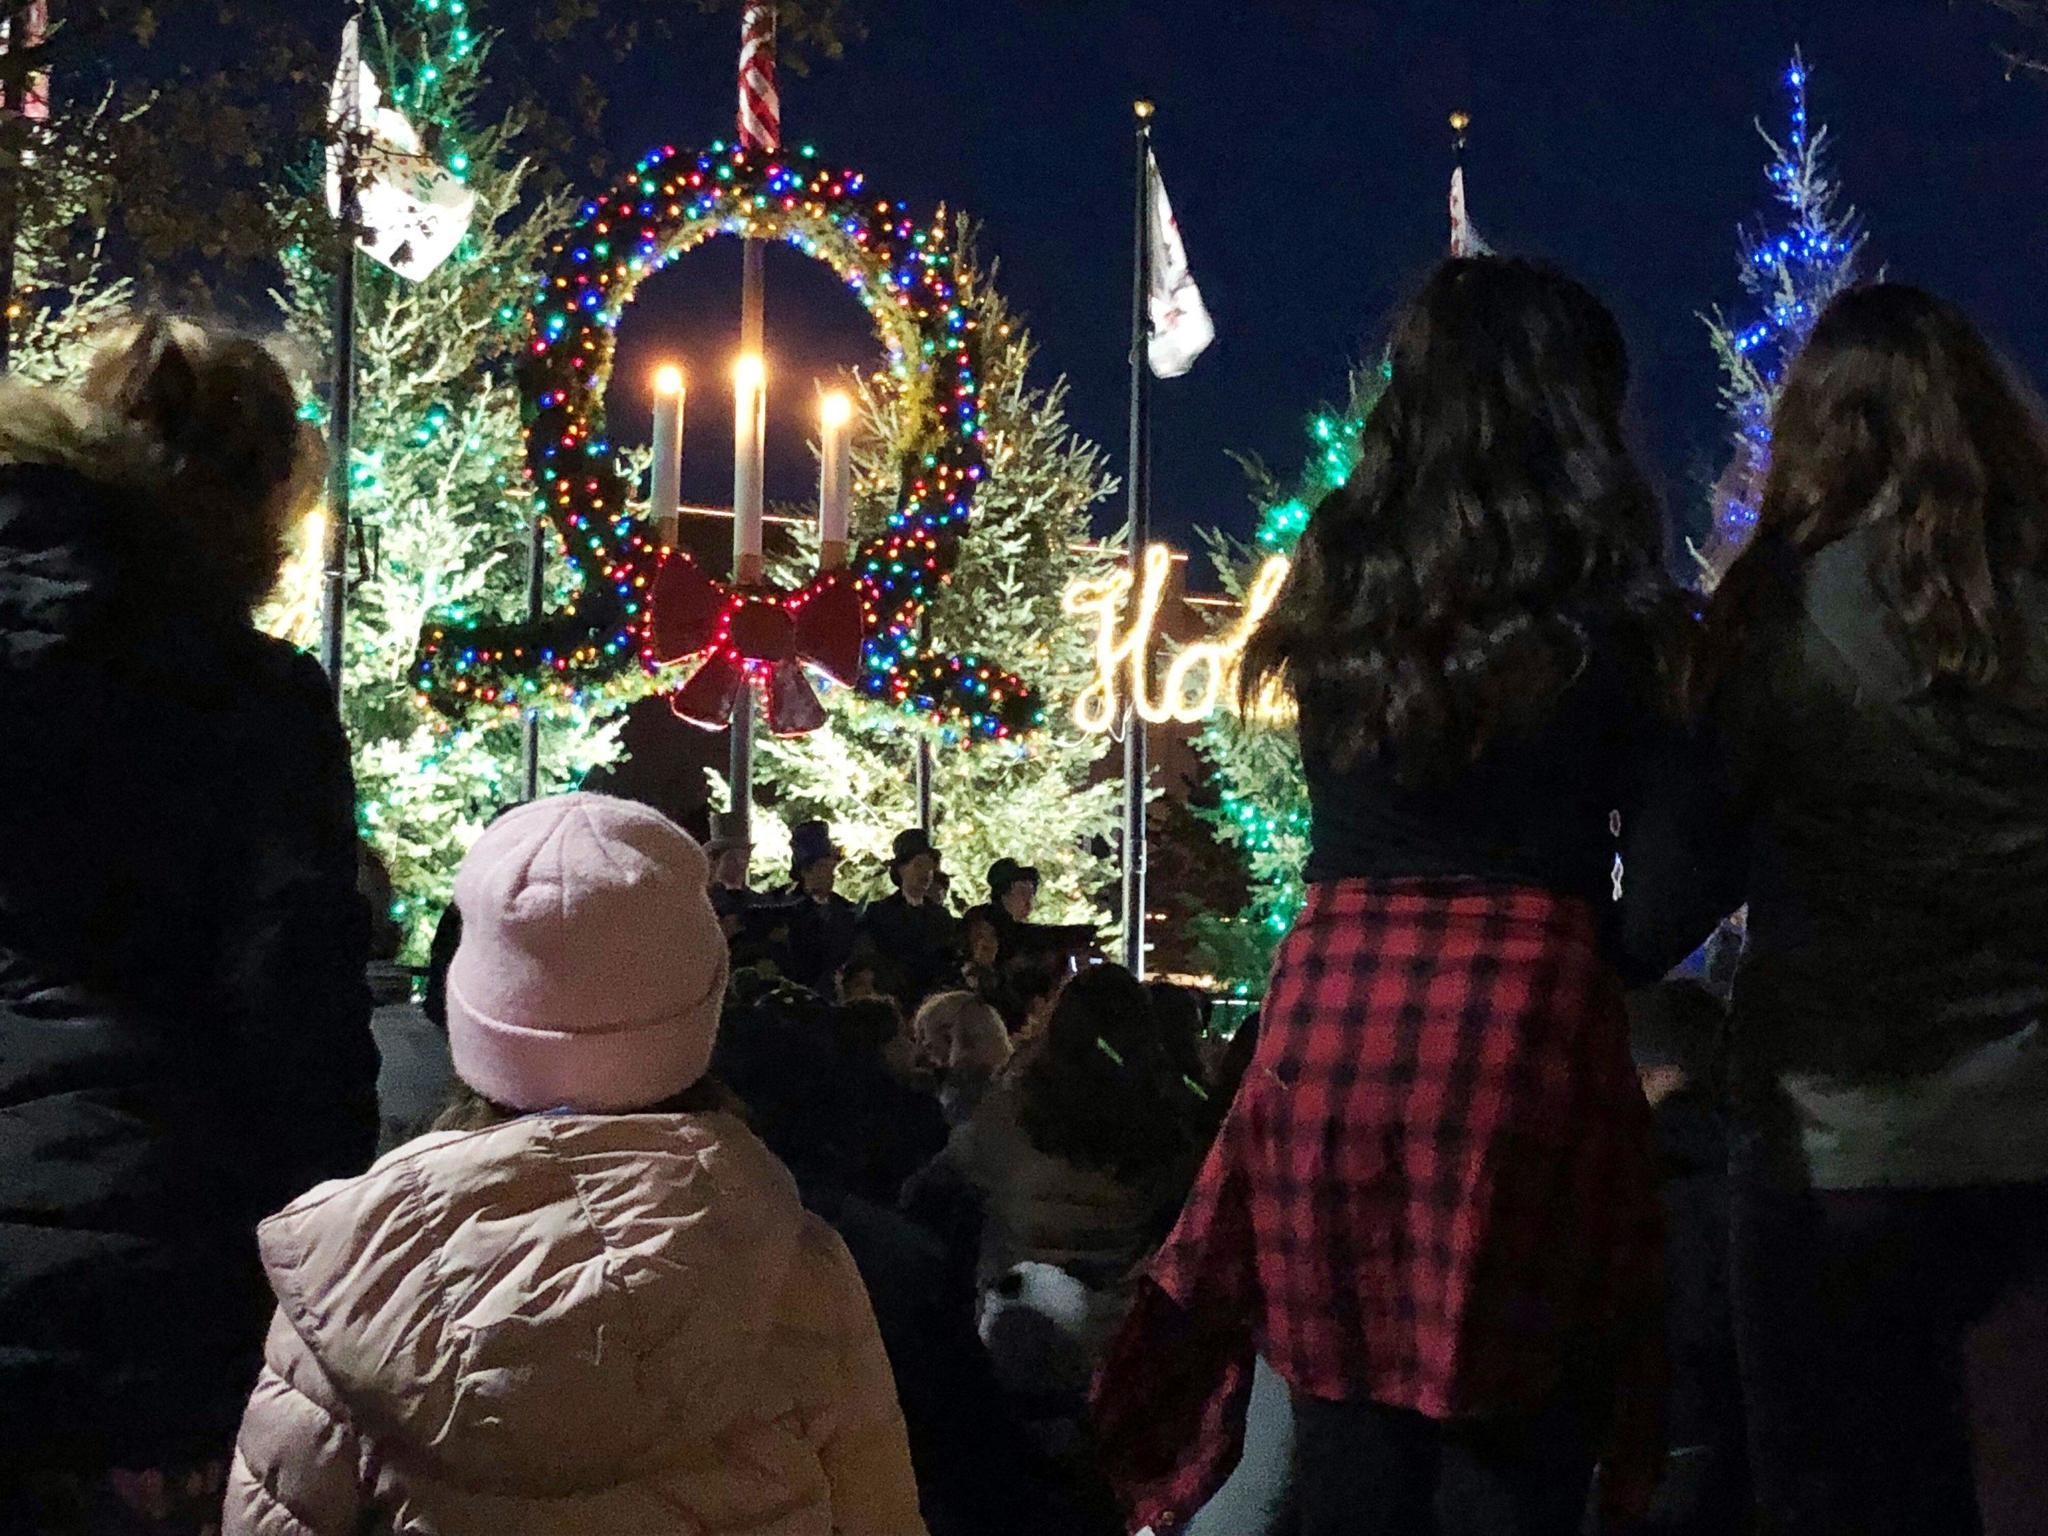 arlington heights ushers in holidays with tree lighting during warmest black friday on record chicago tribune